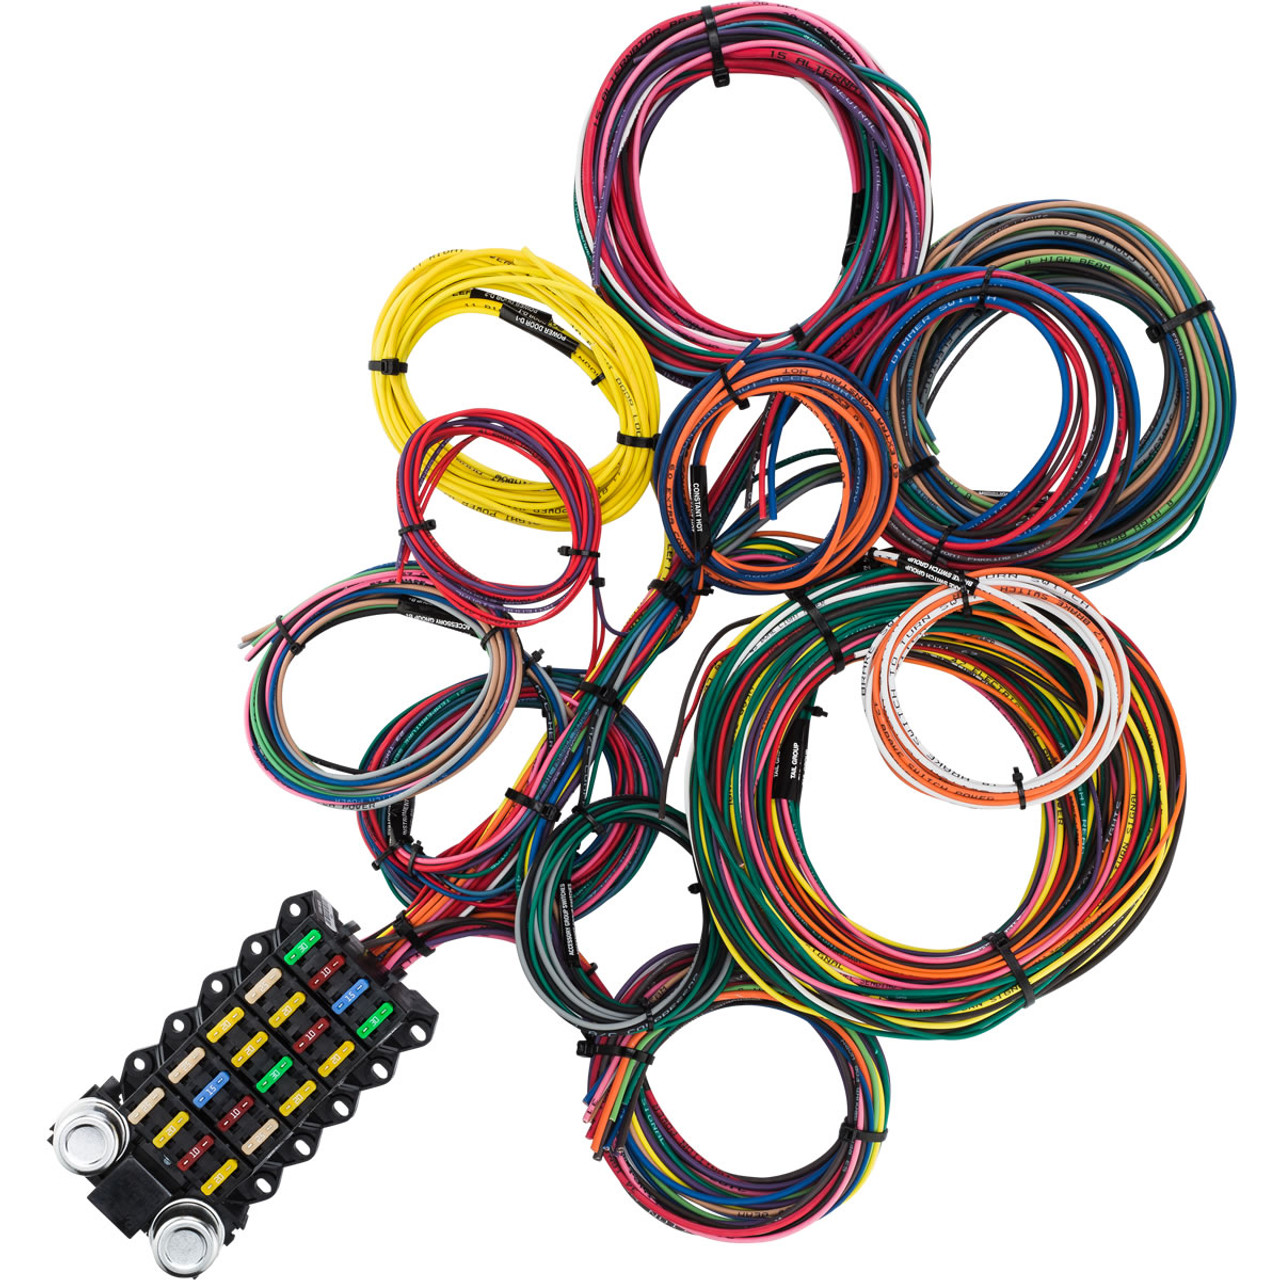 22 circuit budget wire harness kwikwire com electrify your ride22 circuit budget wire harness